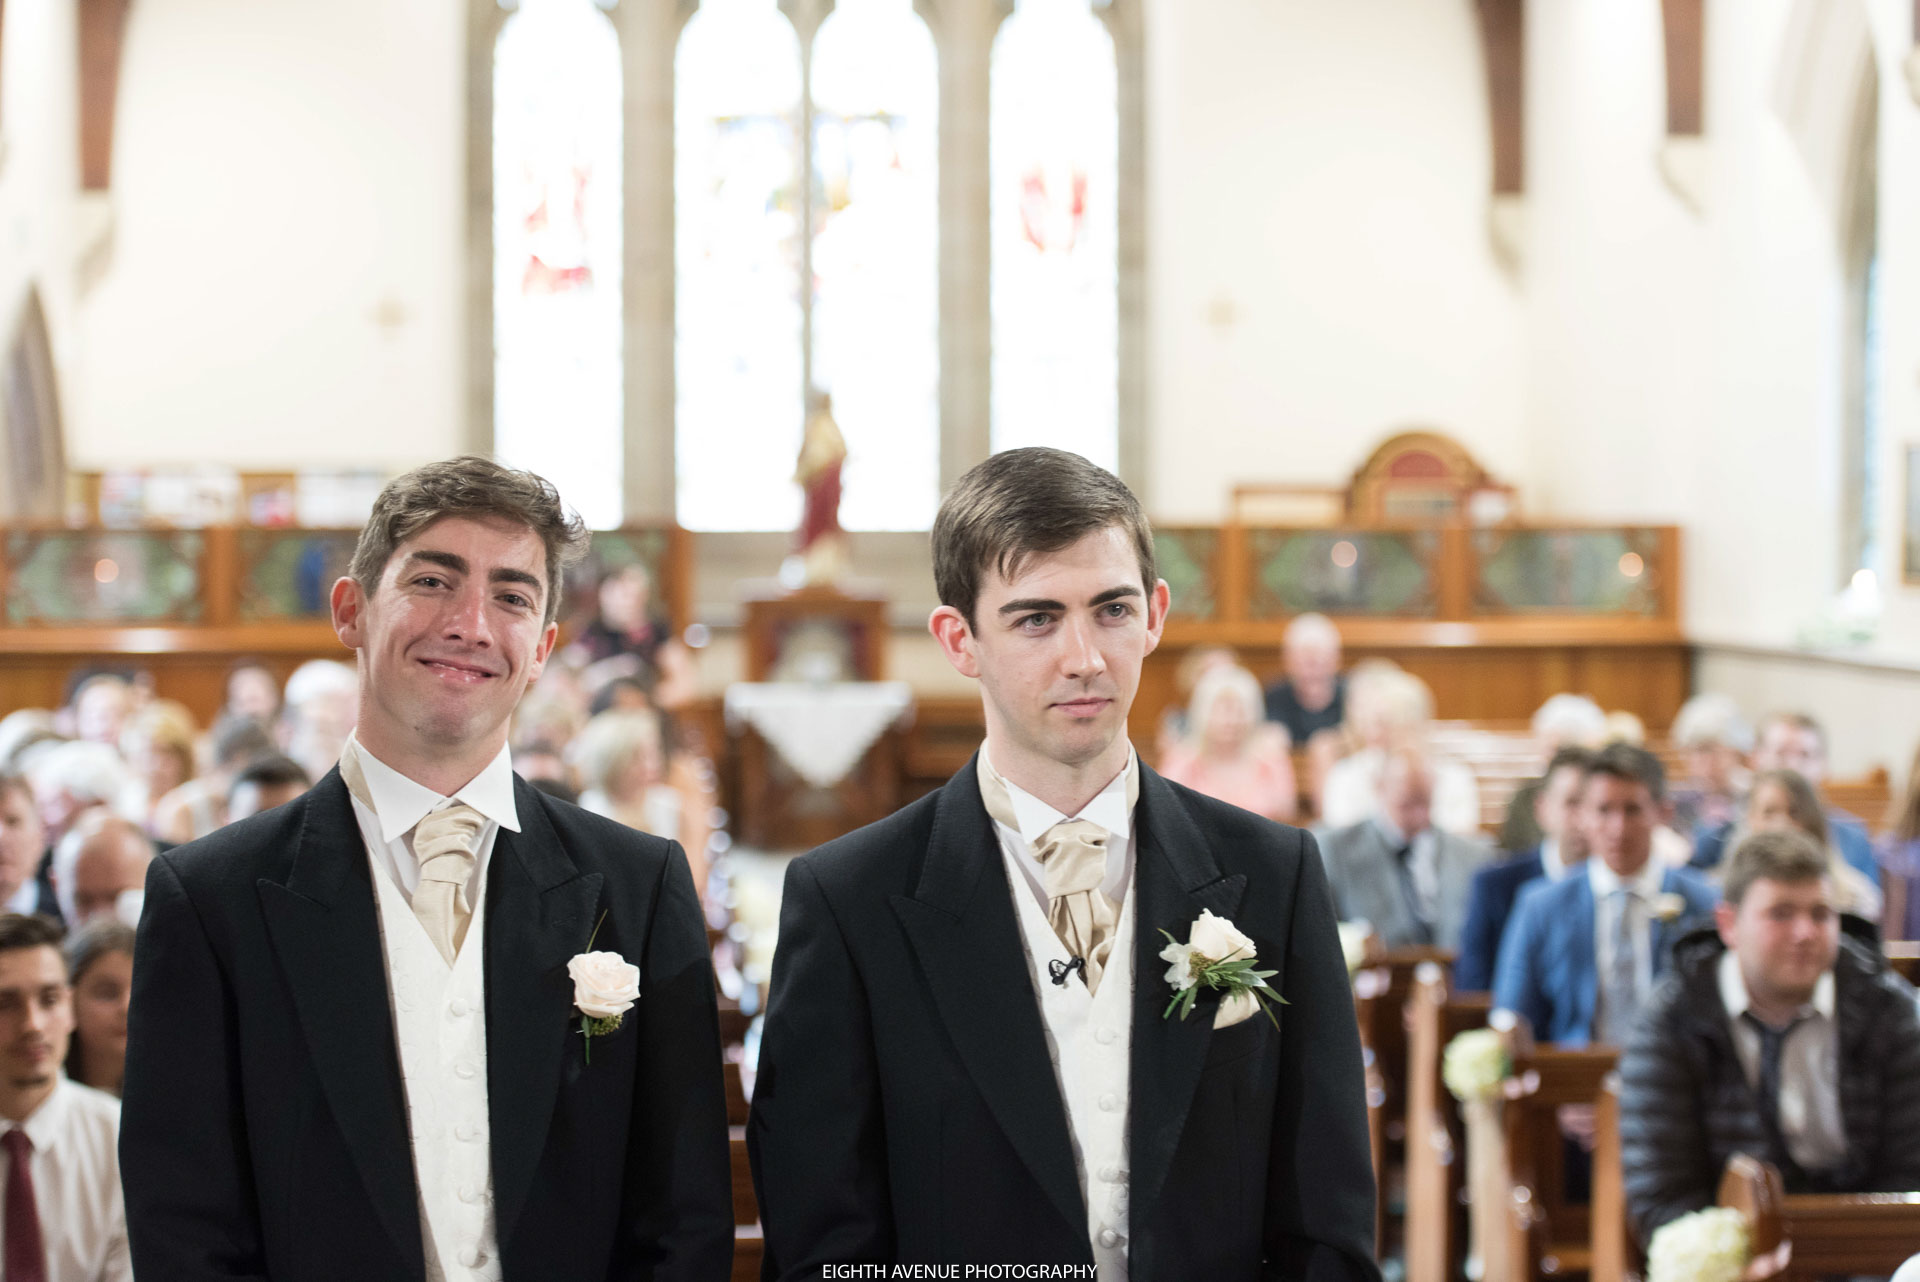 Groom looking nervous in church